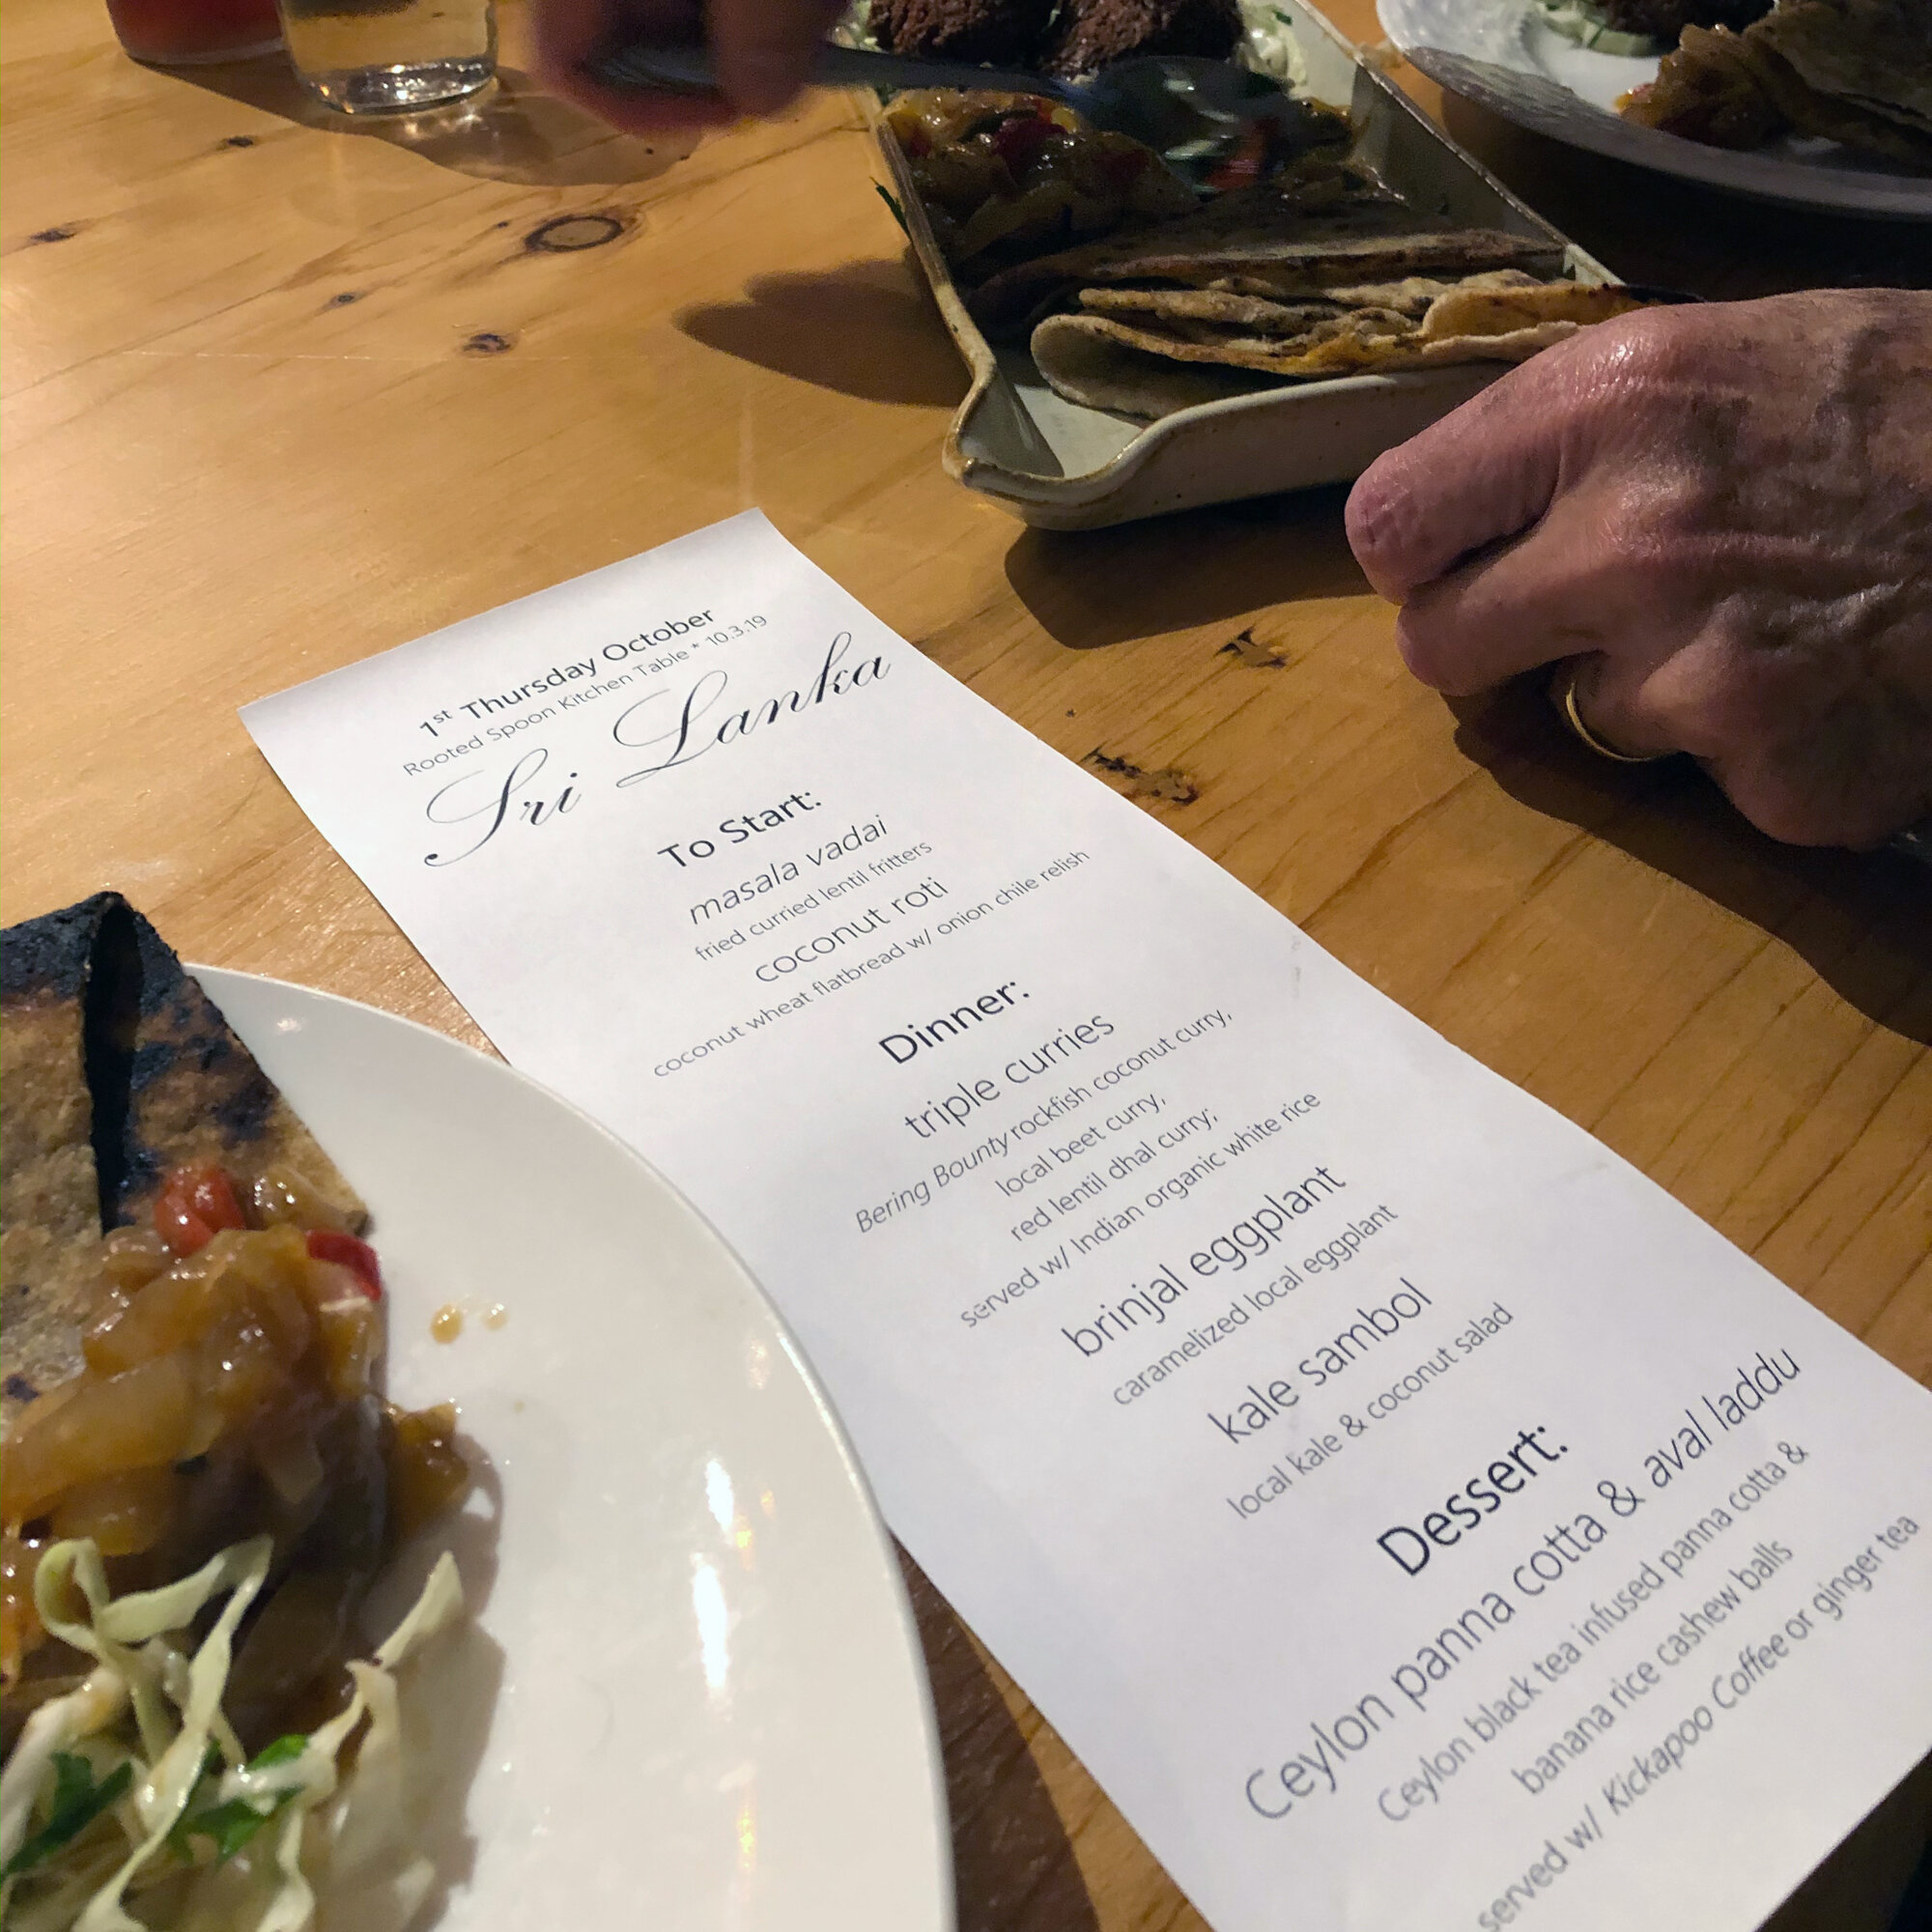 The Menu at the Rooted Spoon Kitchen Table for the Opening Reception for Viva Gallery in Viroqua Wisconsin